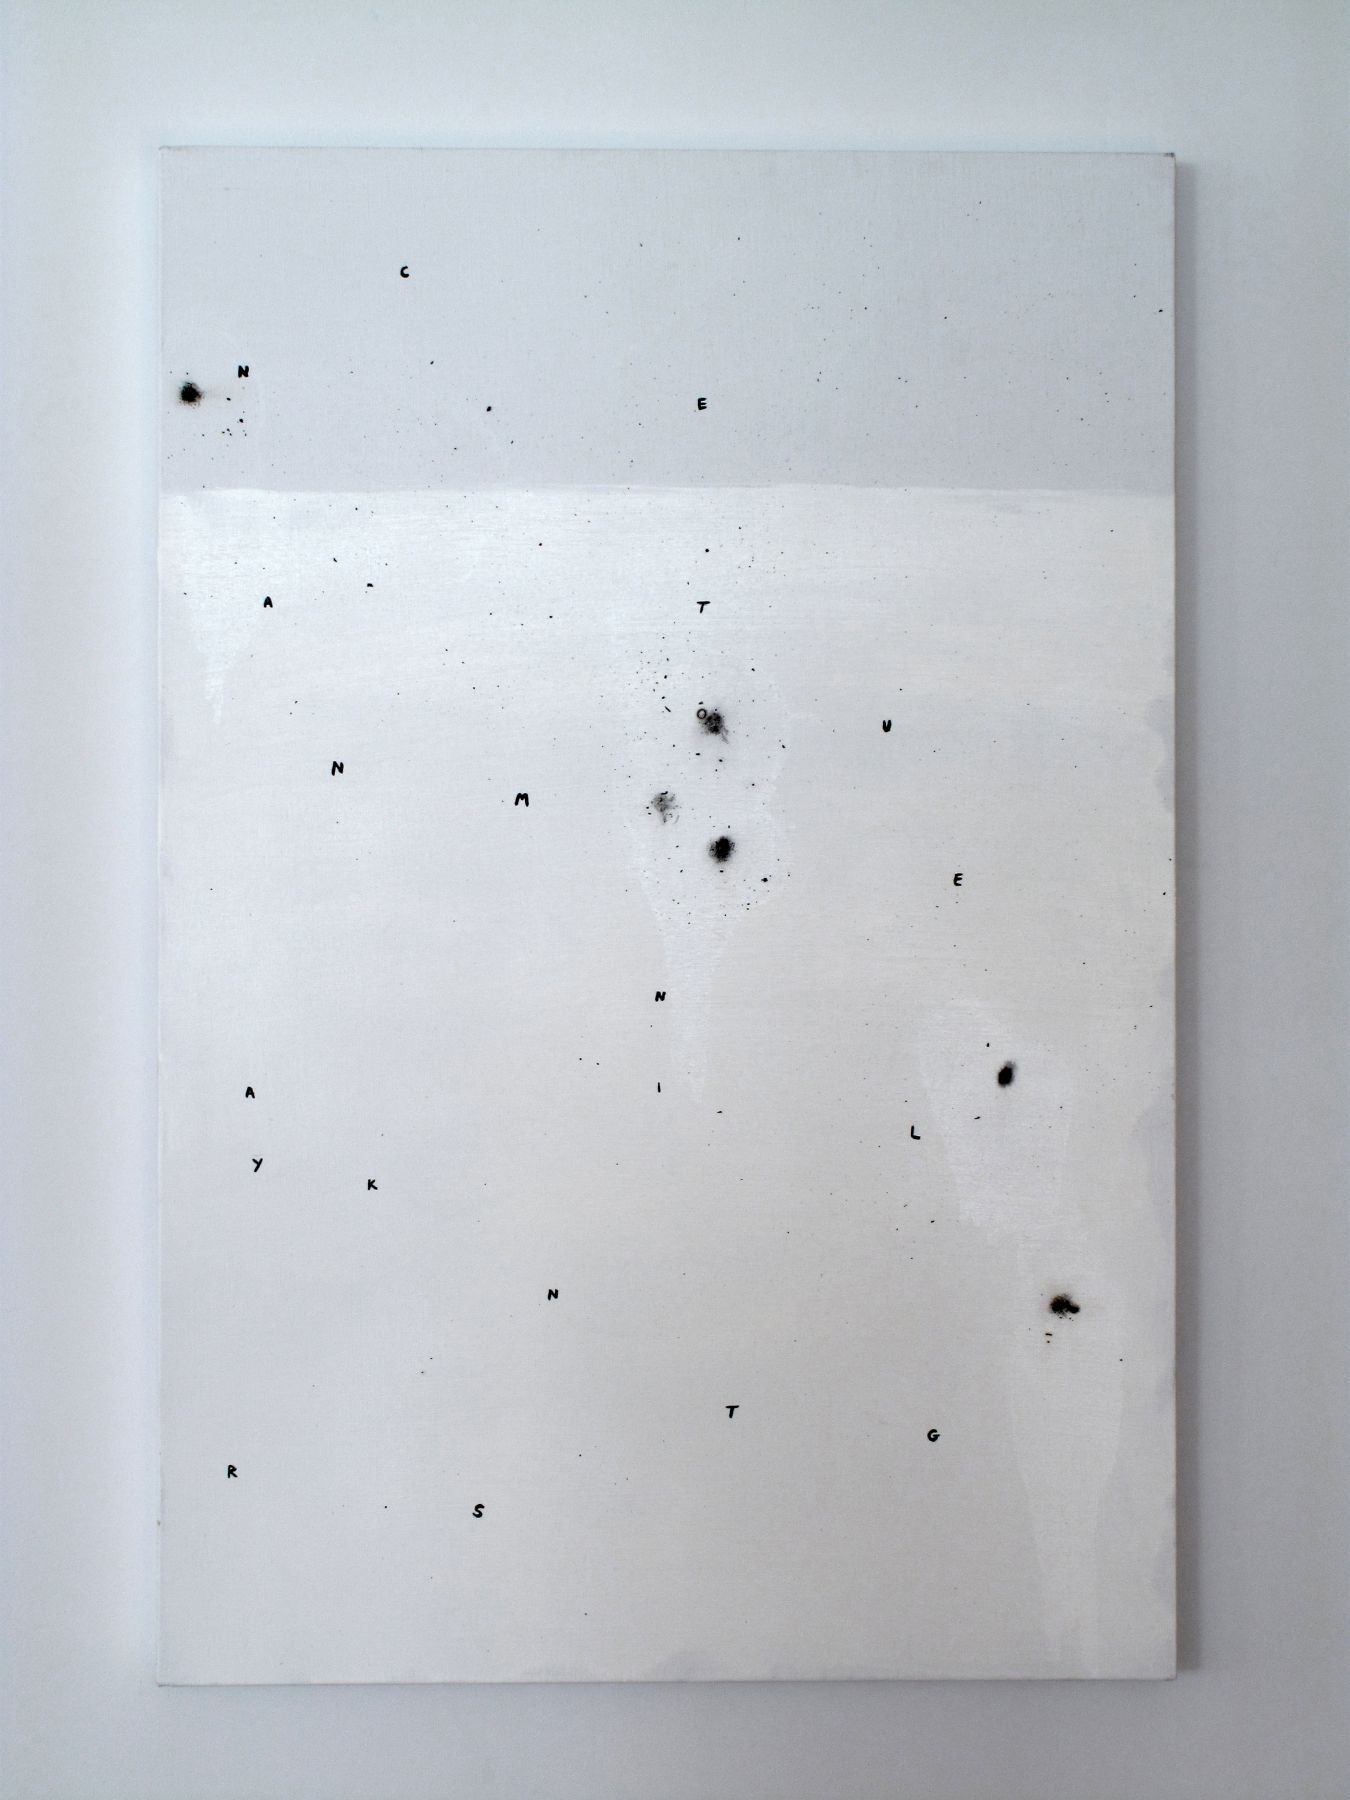 josef strau, The Assistant (3), 2008, ink letters, ashes, acrylic and adhesive on canvas, 36 x 24 inches